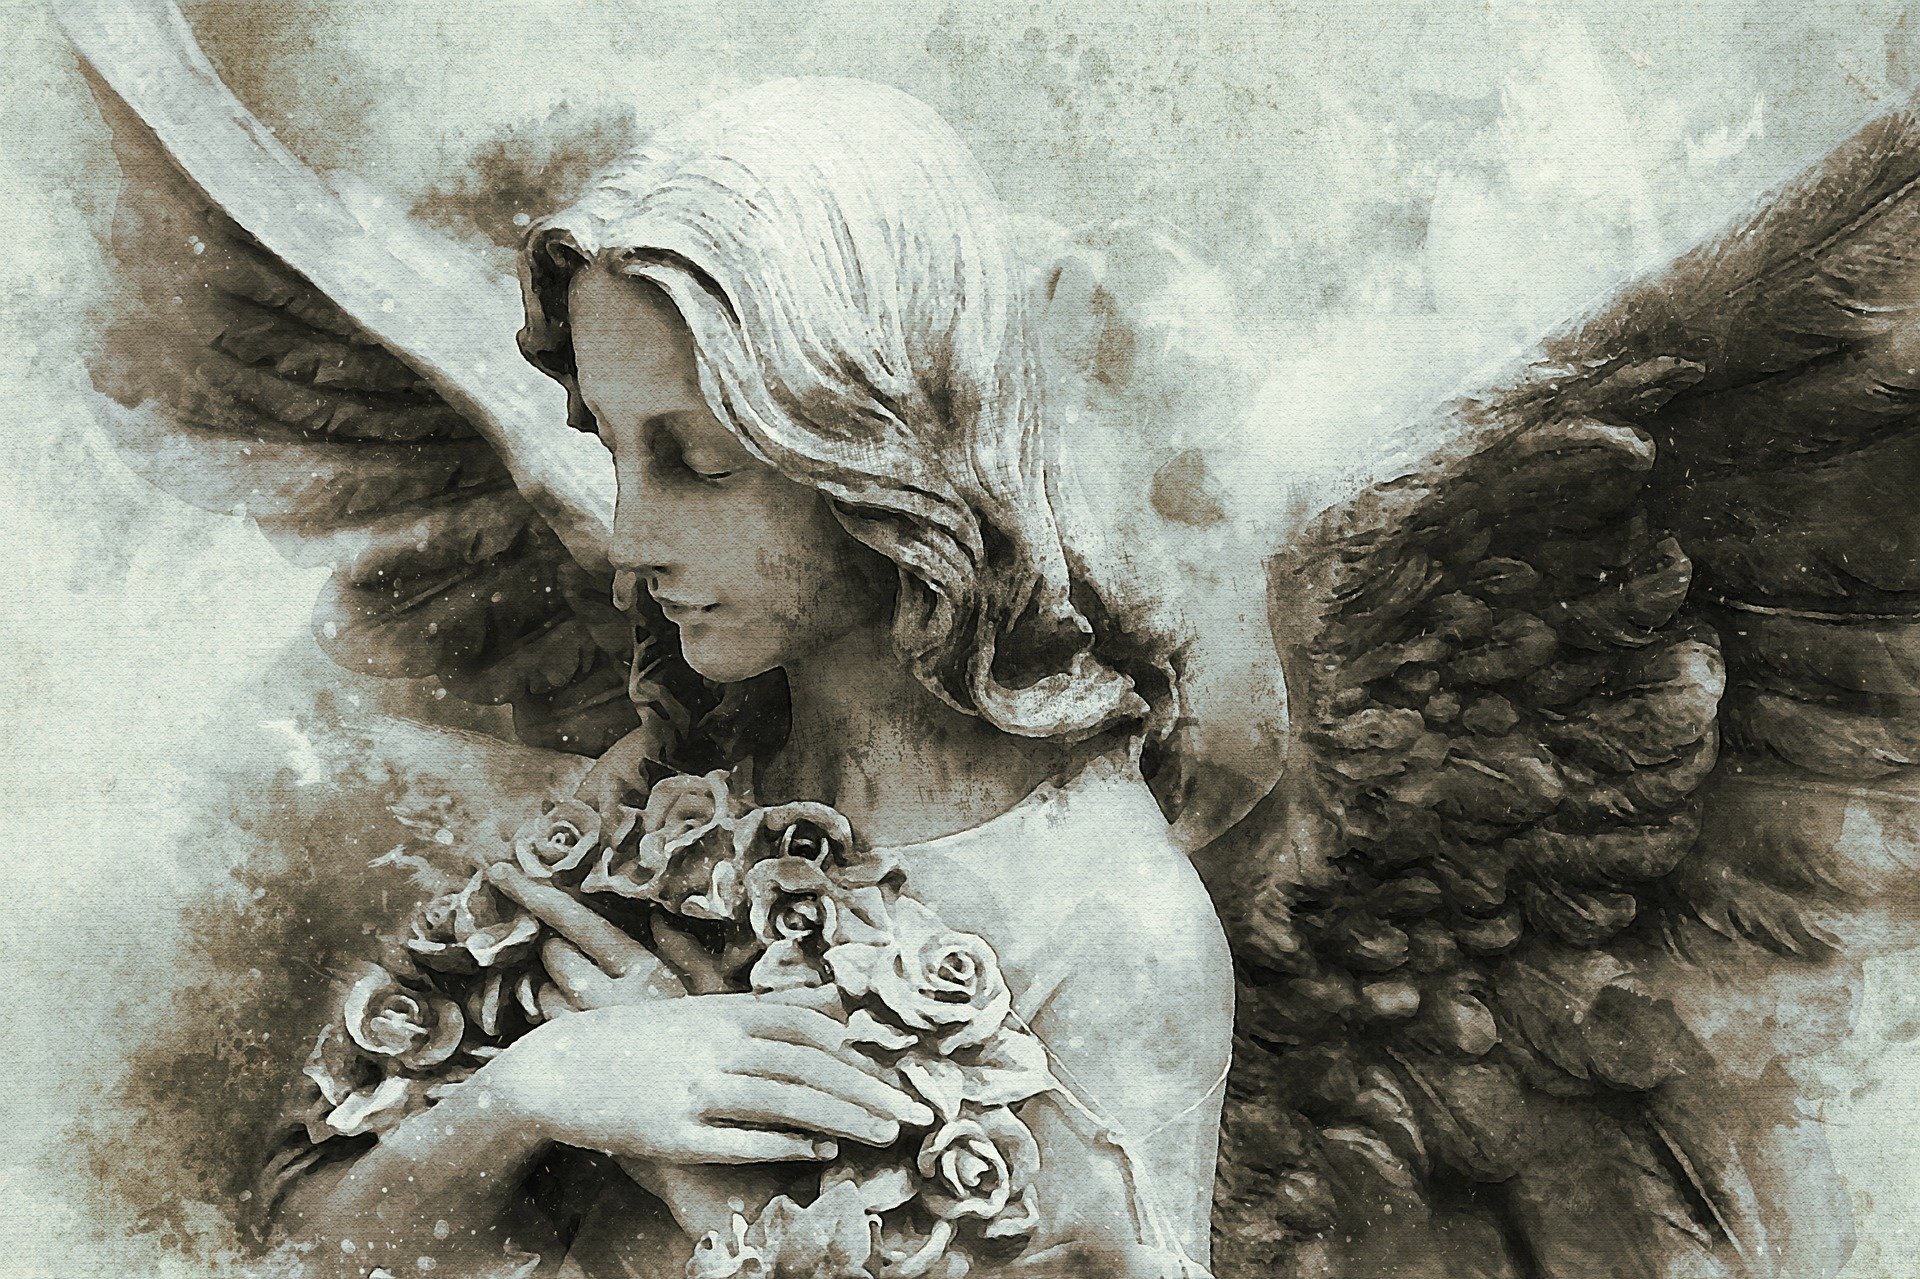 Healing from trauma depicted by image of angel